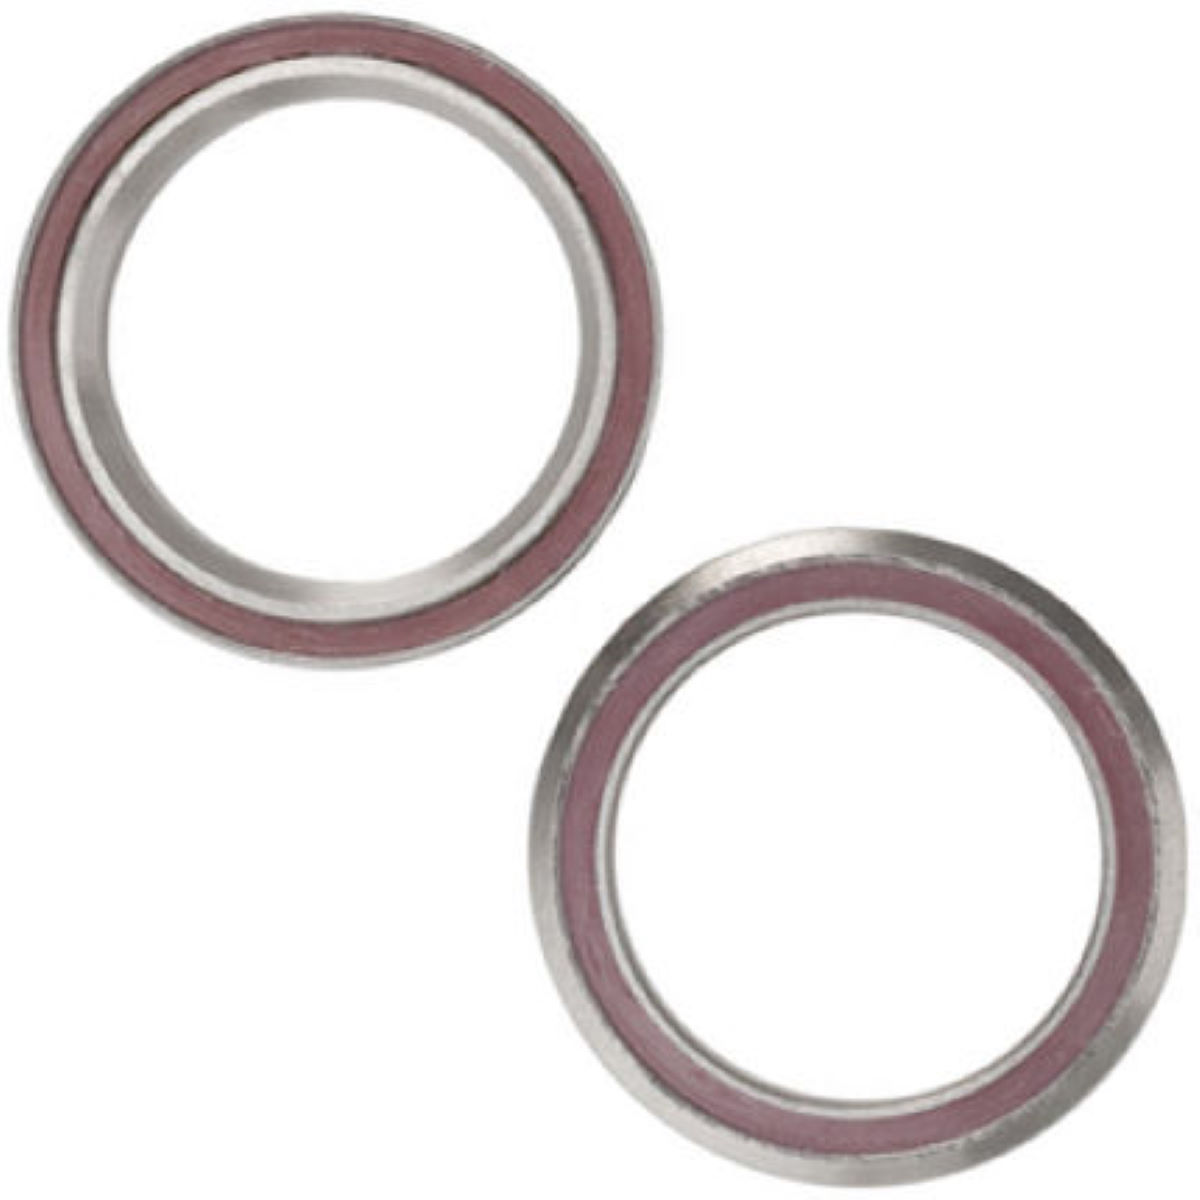 Cane Creek Headset Bearing